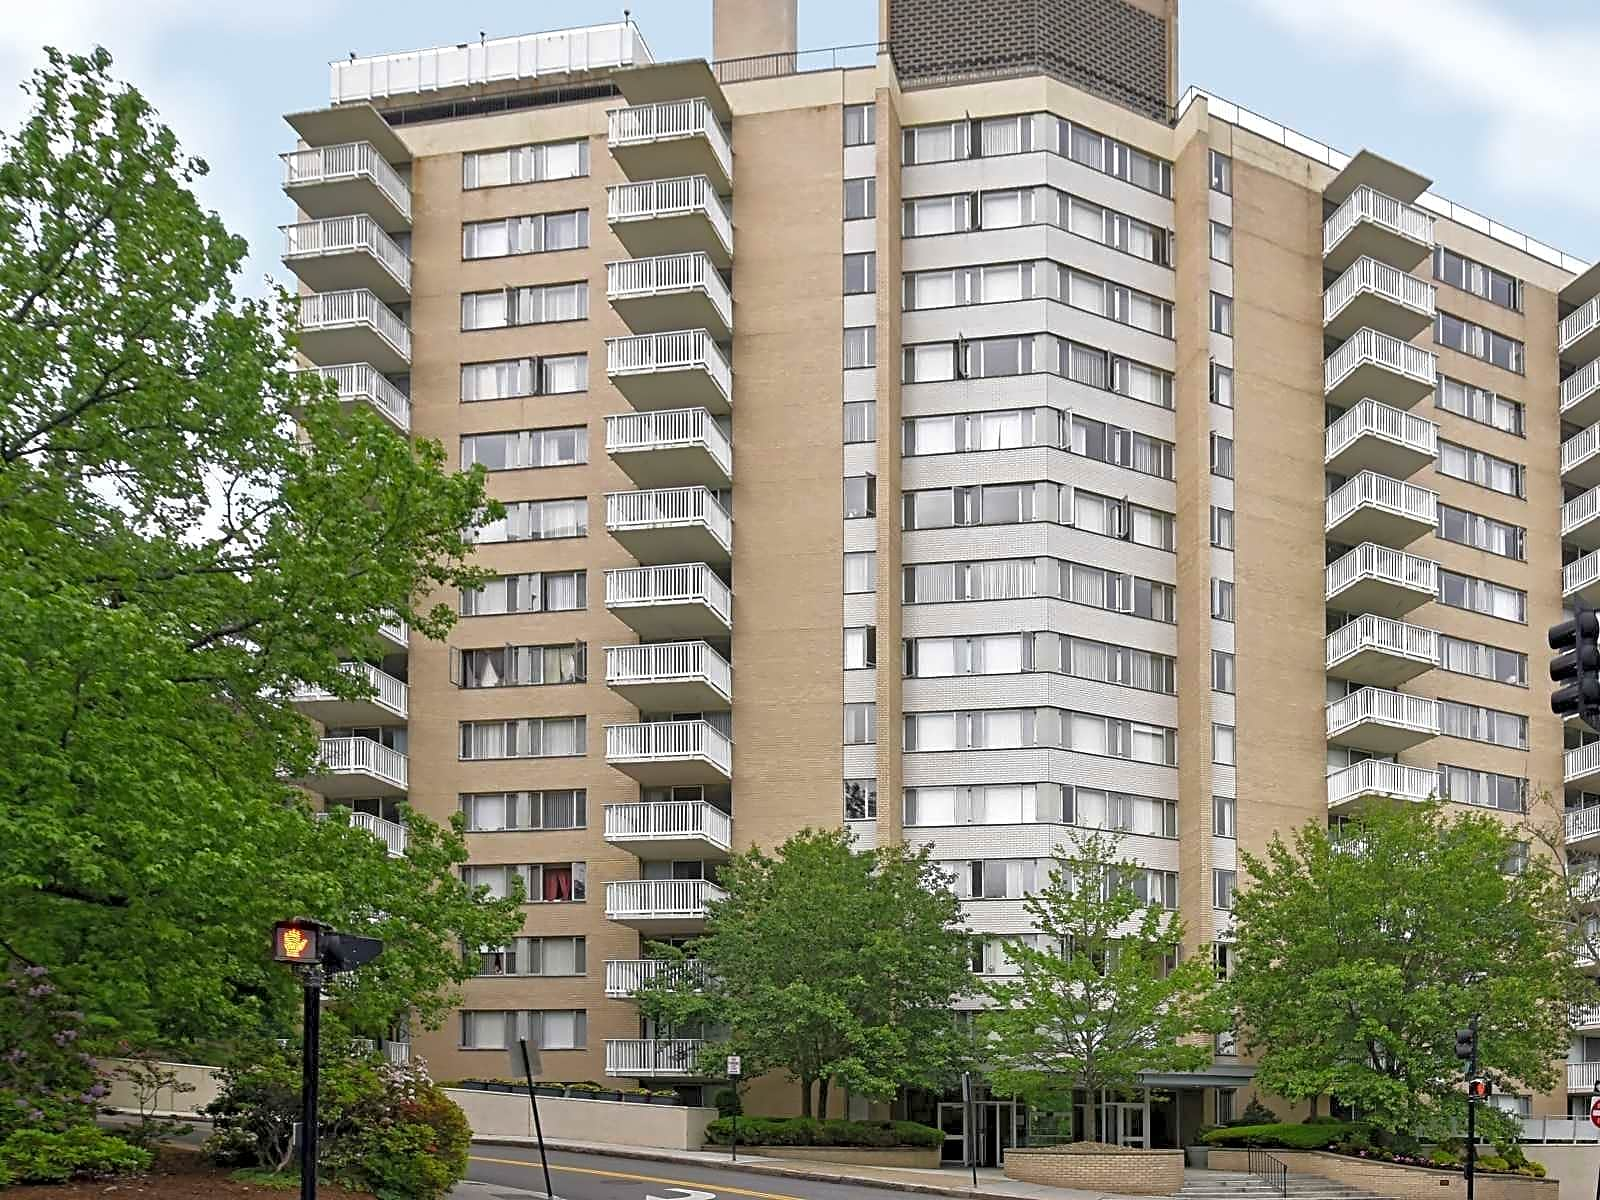 Apartments Near Newbury Barclay on Beacon for Newbury College Students in Brookline, MA